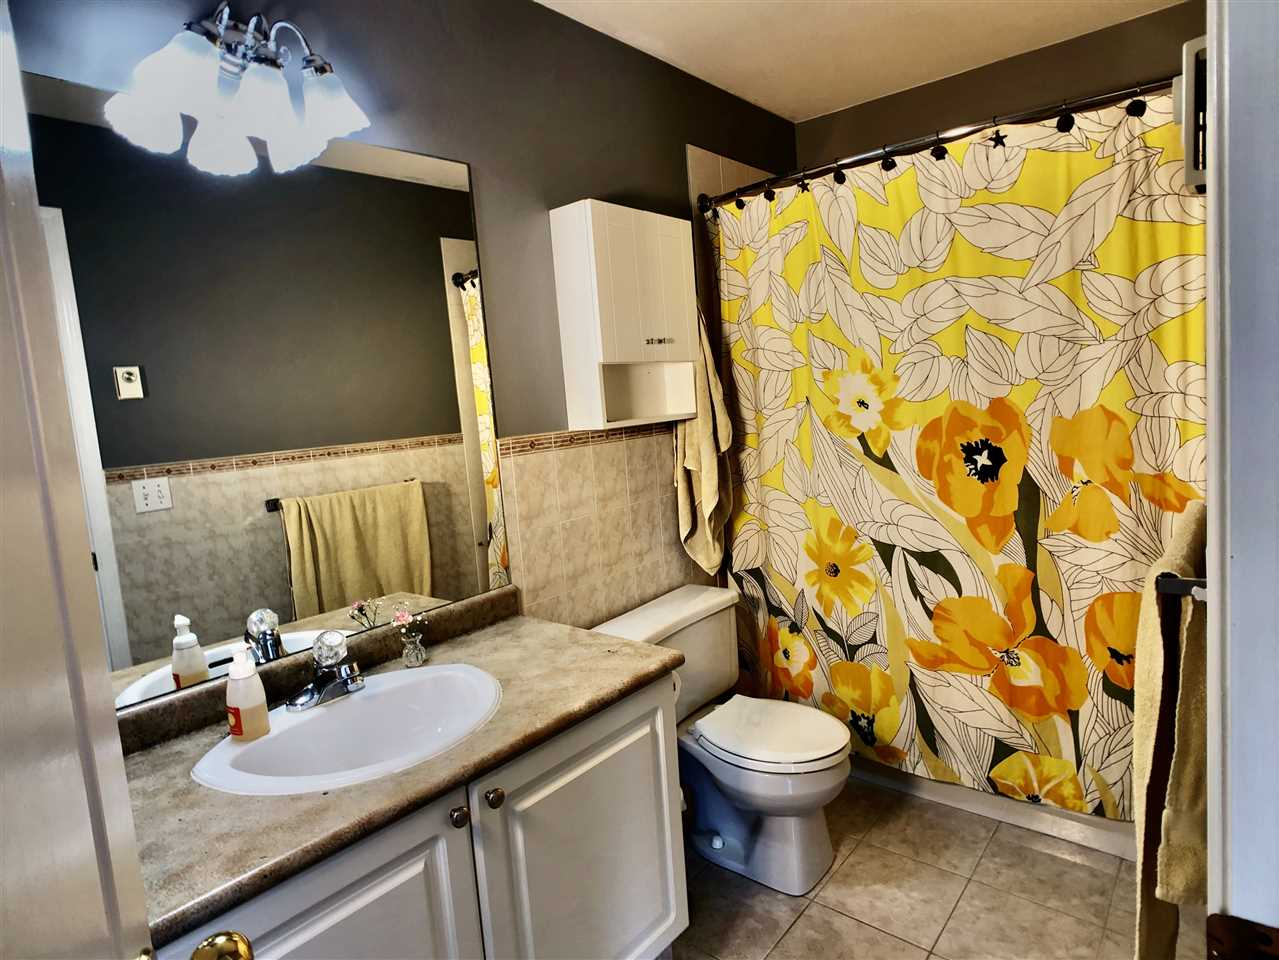 207 9310 KING GEORGE BOULEVARD - Bear Creek Green Timbers Townhouse for sale, 3 Bedrooms (R2481092) - #10